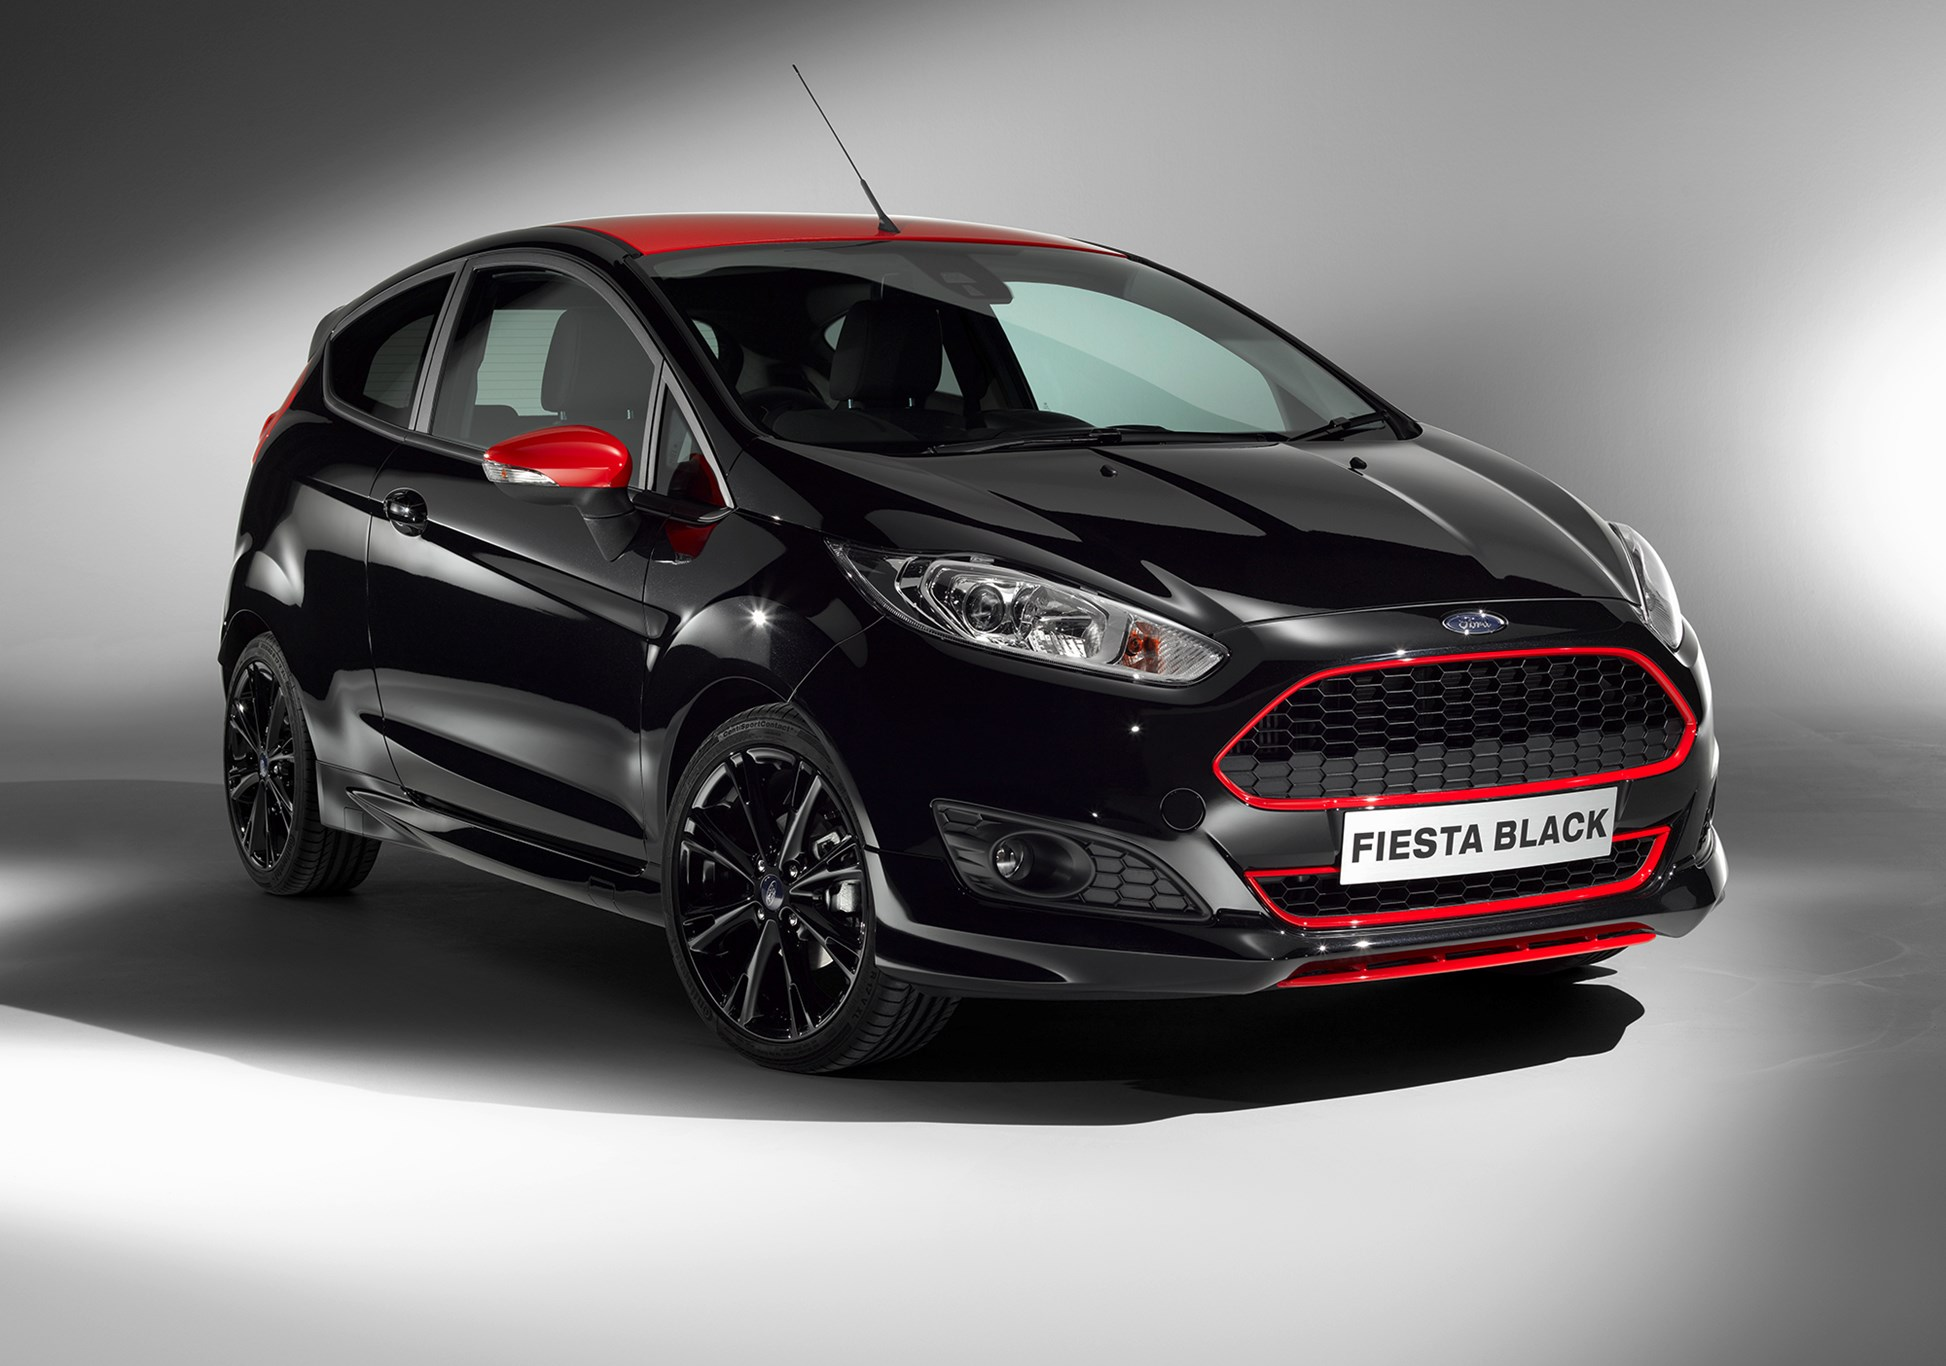 New eight inch touchscreen sync3 dominates many fiestas dashboards